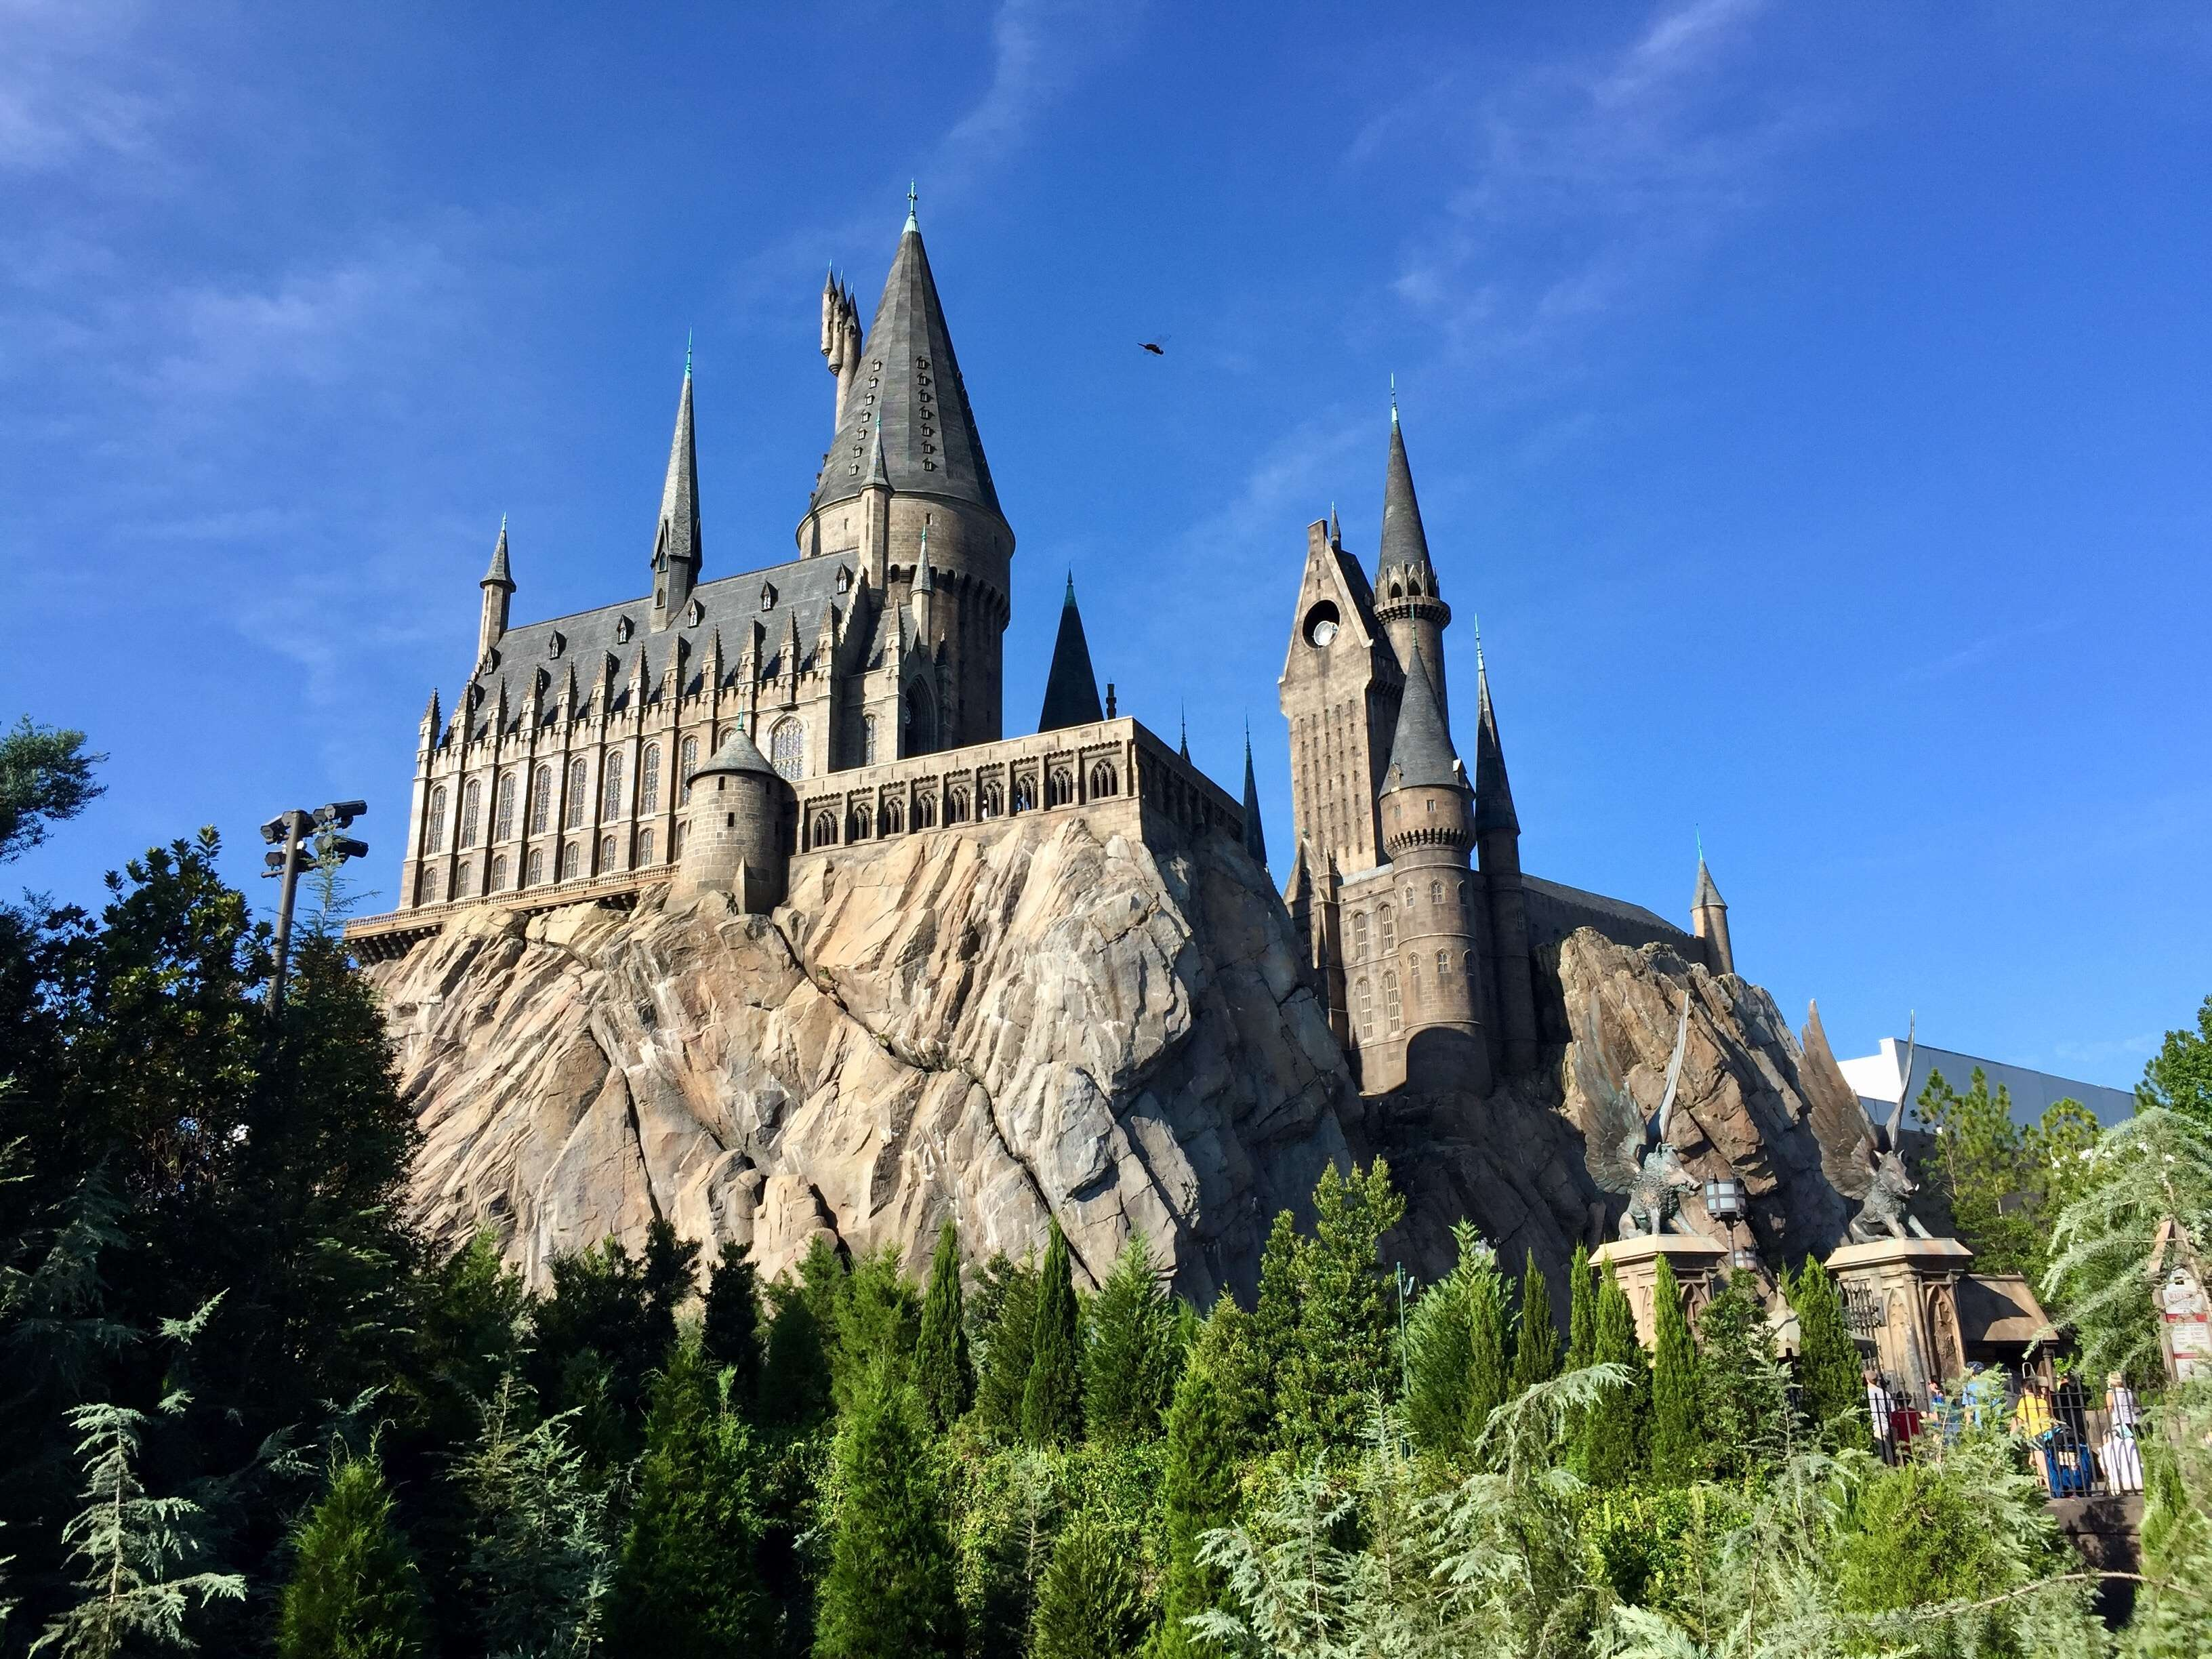 Harry Potter New York introduces exciting virtual reality experiences